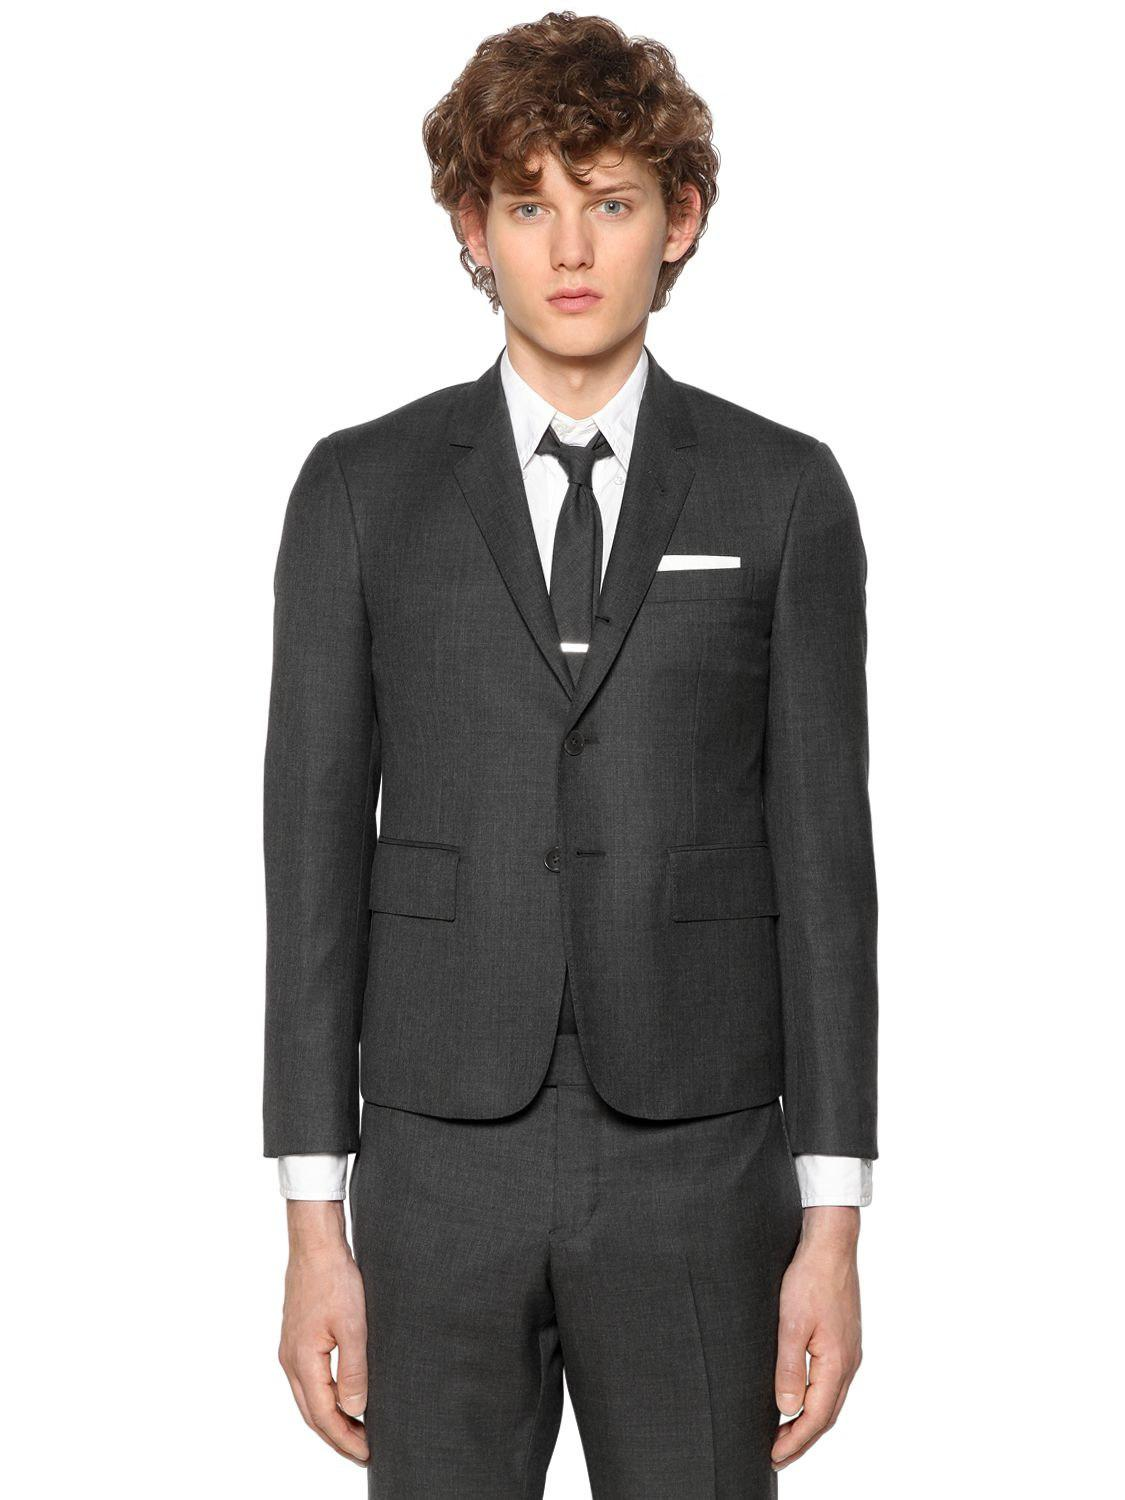 ca7545a4ea11 Lyst - Thom Browne Skinny Fit Light Wool Gabardine Suit in Gray for Men -  Save 40%